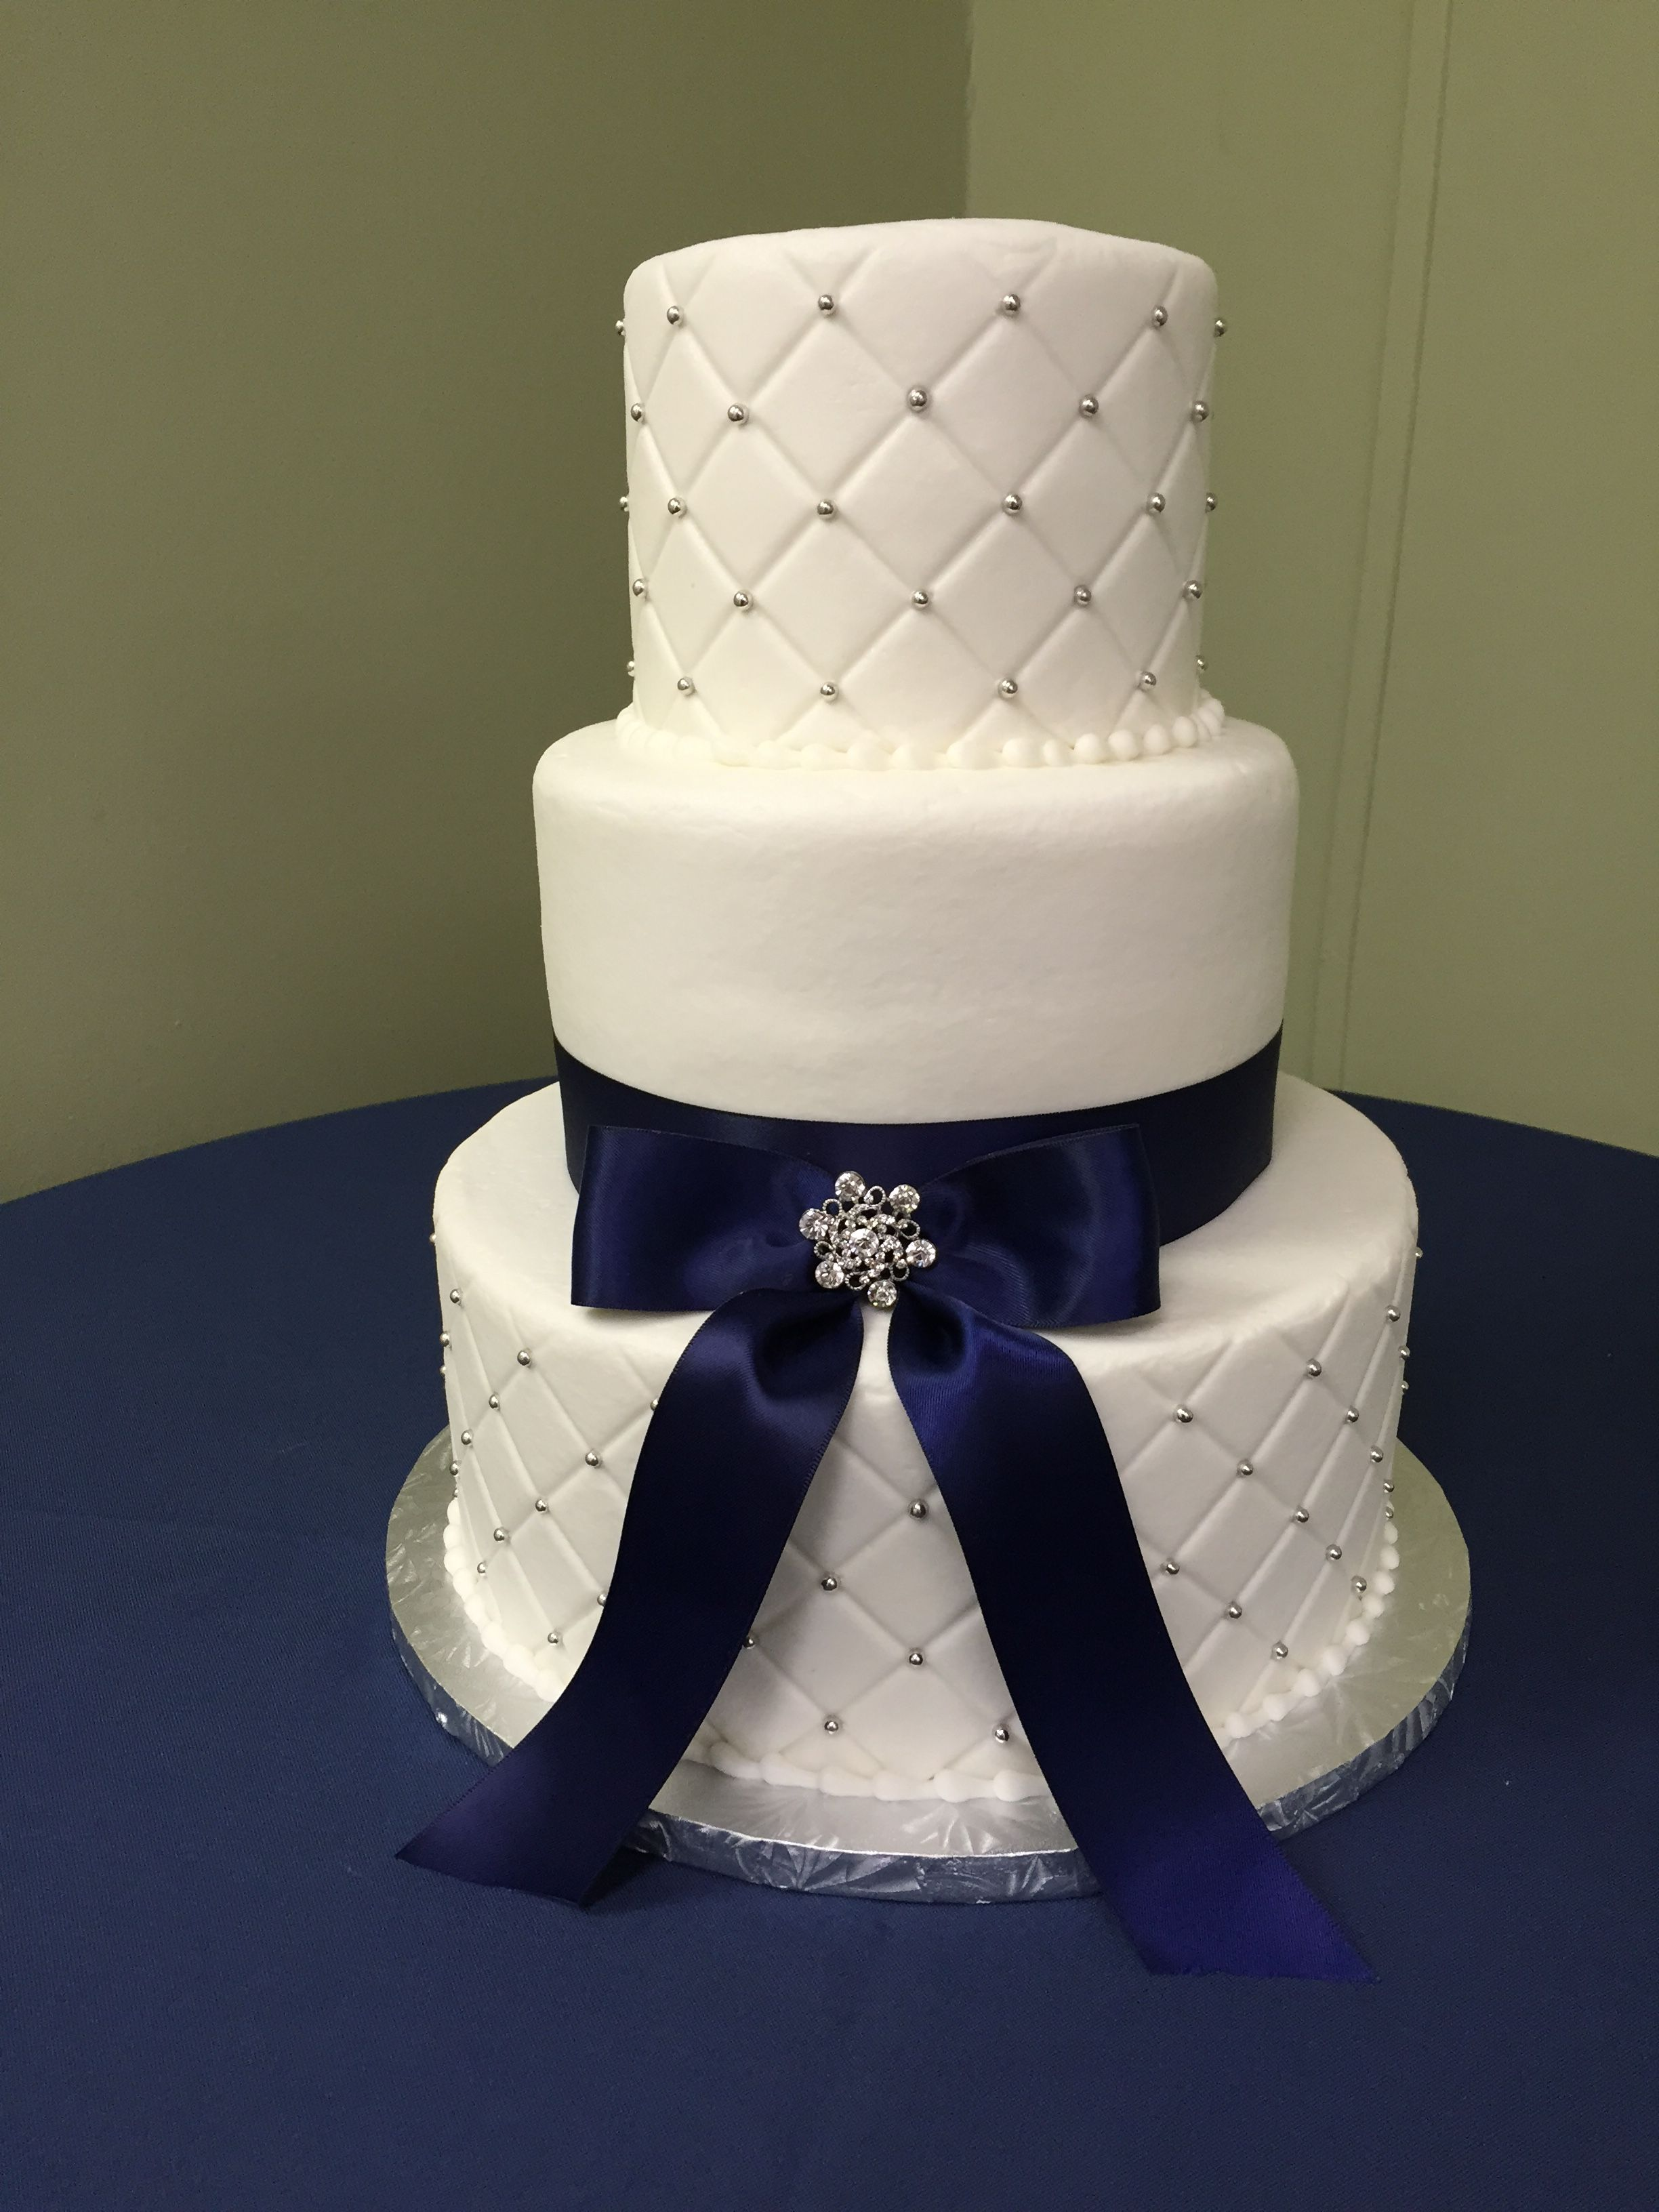 Cute 3 Tier Round Wedding Cake With Navy Blue Bow And